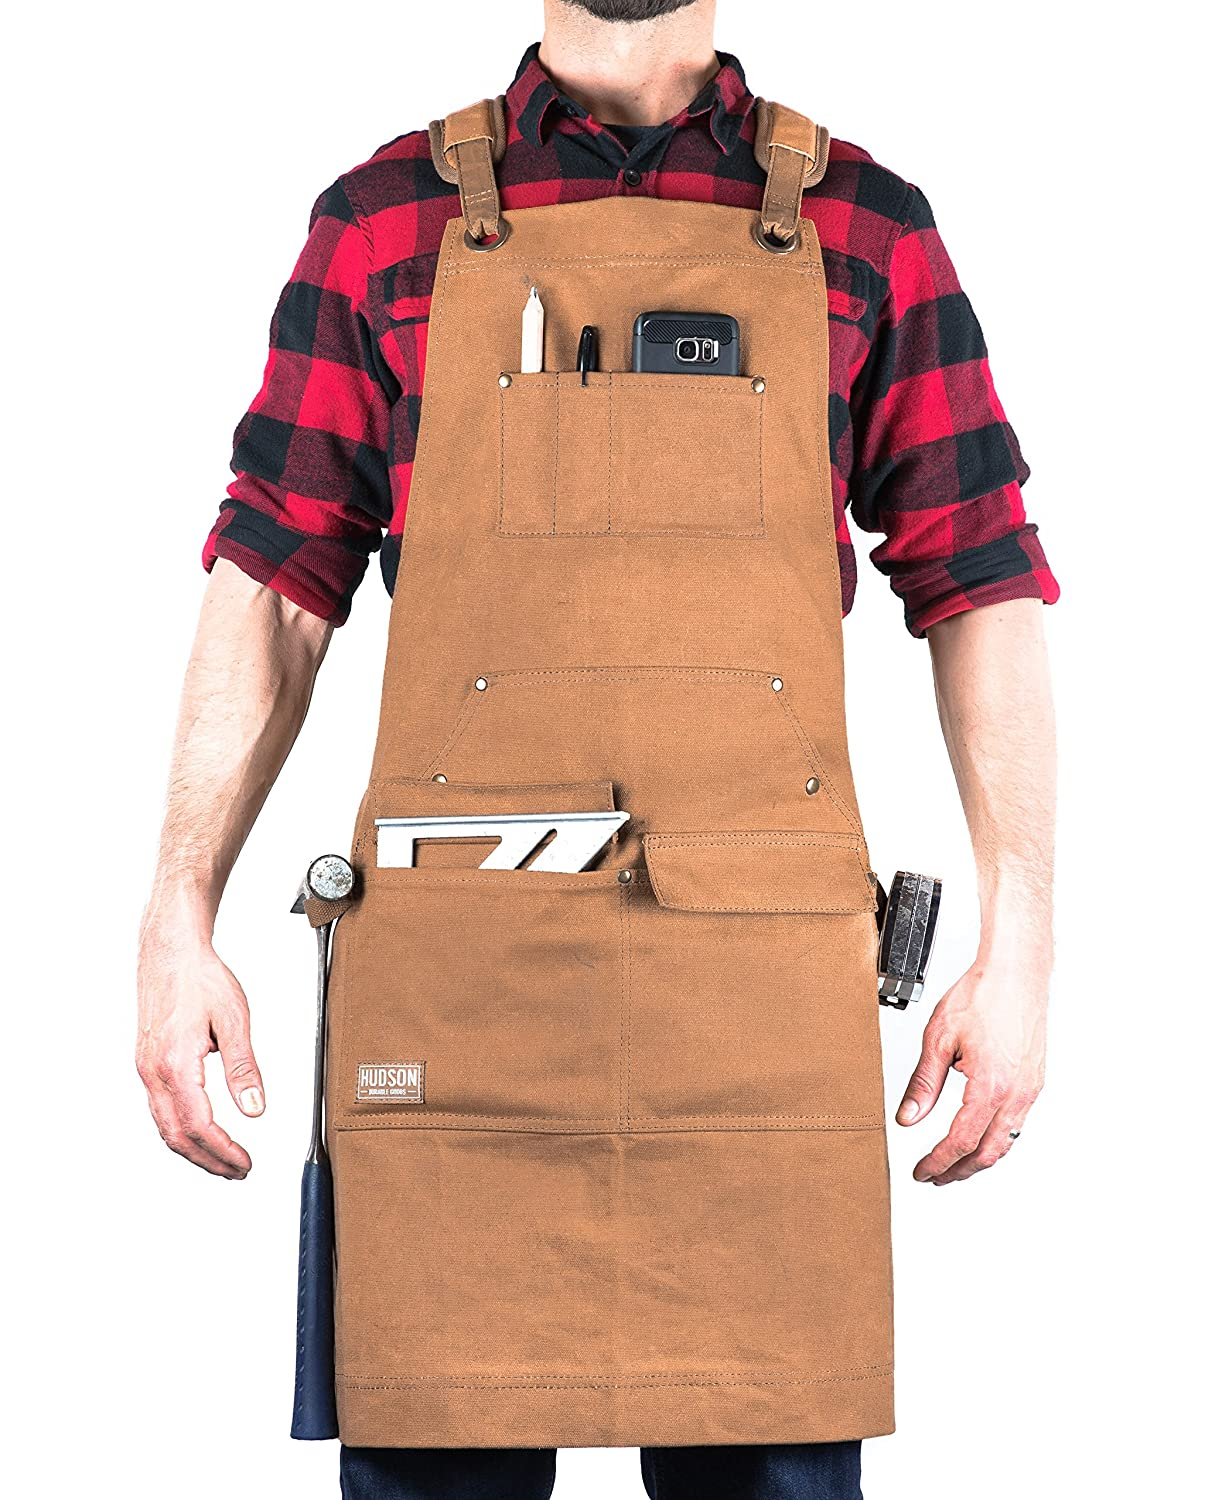 Hudson Durable Goods - Heavy Duty Waxed Canvas Work Apron with Tool Pockets (Black), Cross-Back Straps & Adjustable M to XXL HDG901